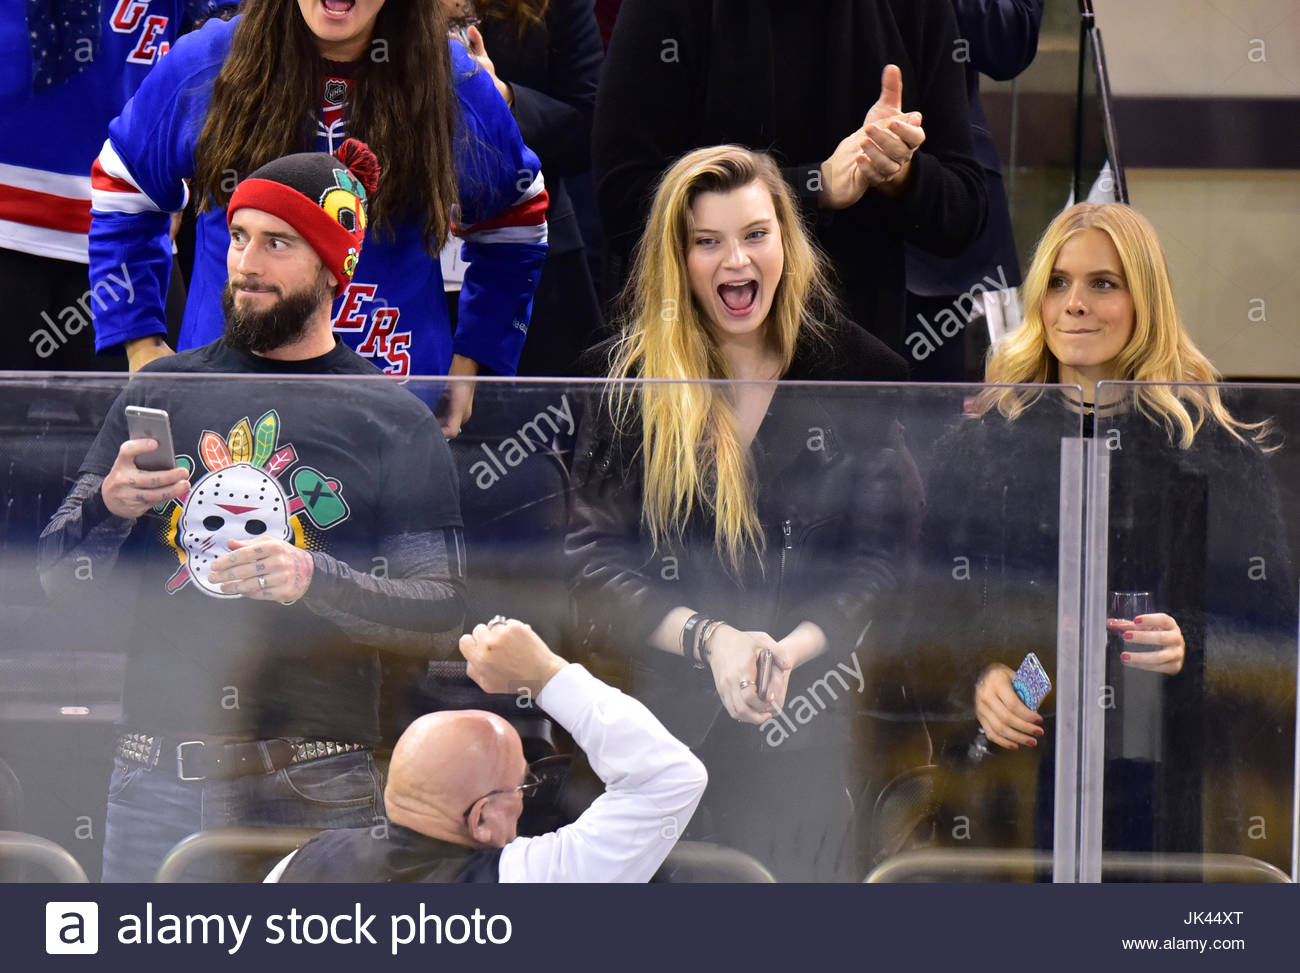 Cm Punk And Lizzy Glynn Celebrities Attend Vancouver Canucks Vs New York Rangers Hockey Game At Madison Square Garden In New York City